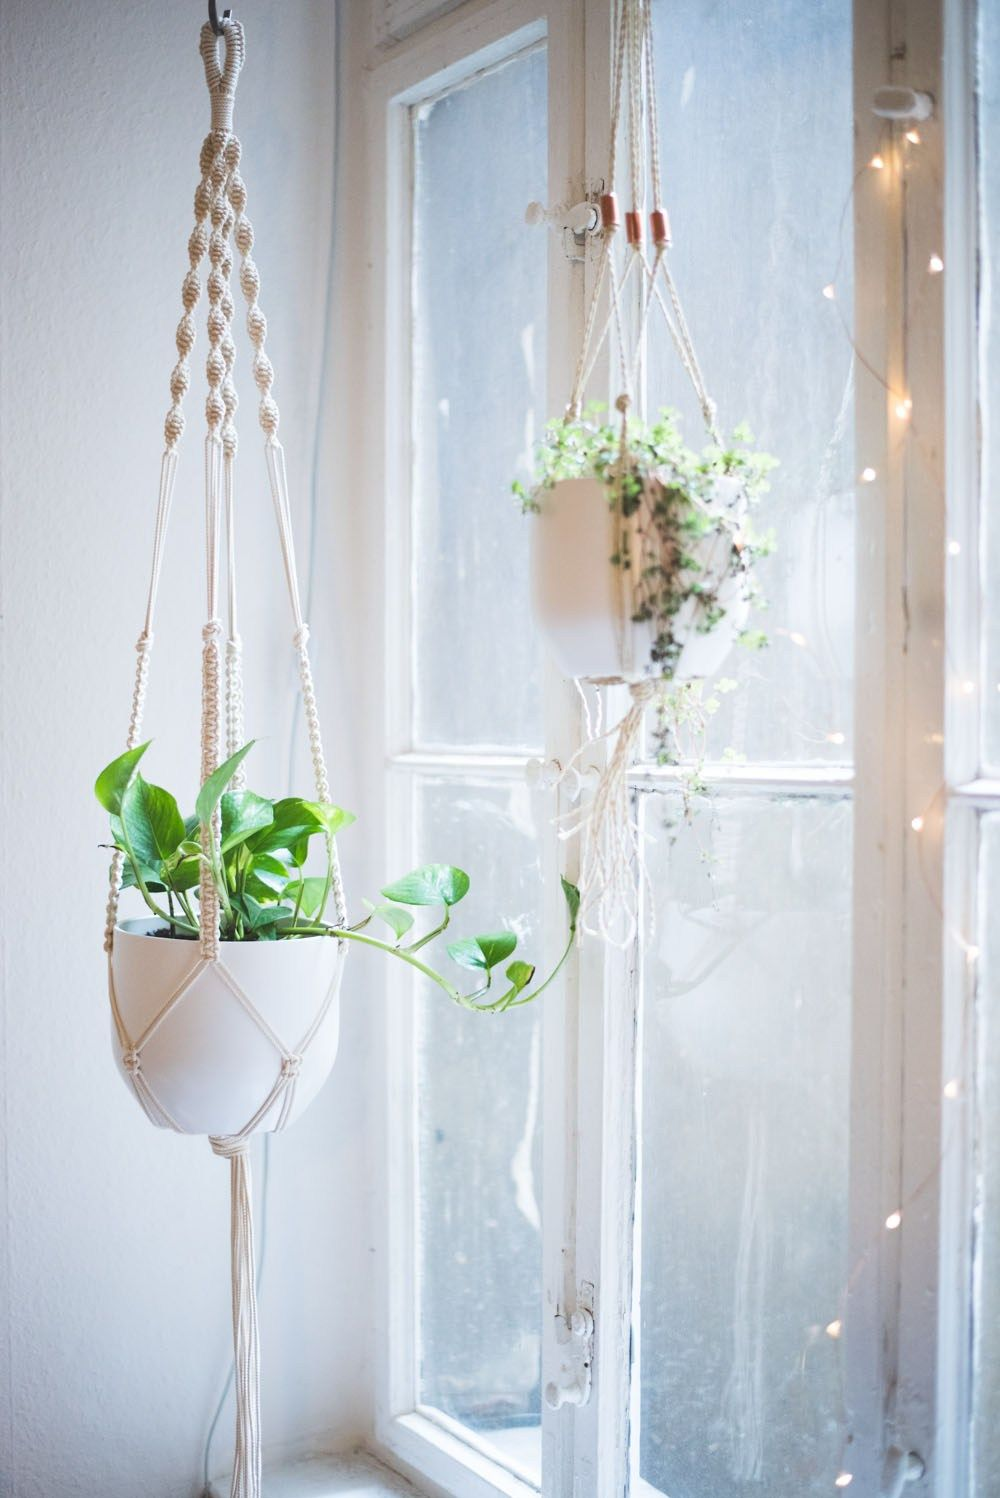 easy home diy macrame plant hanger tutorial heylilahey - Diy Hanging Planter